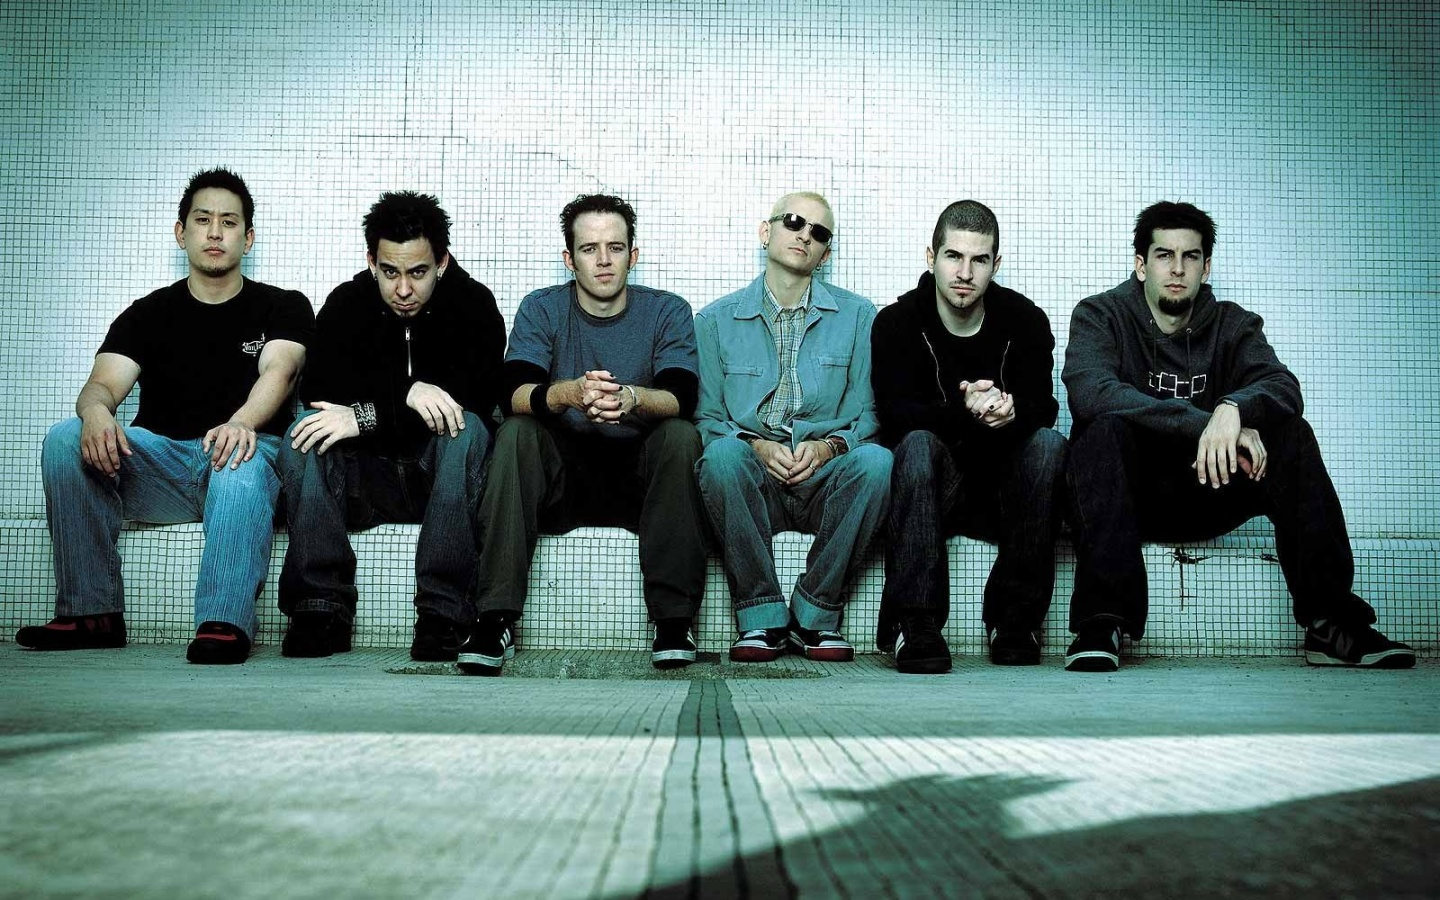 1440x900 The Linkin Park